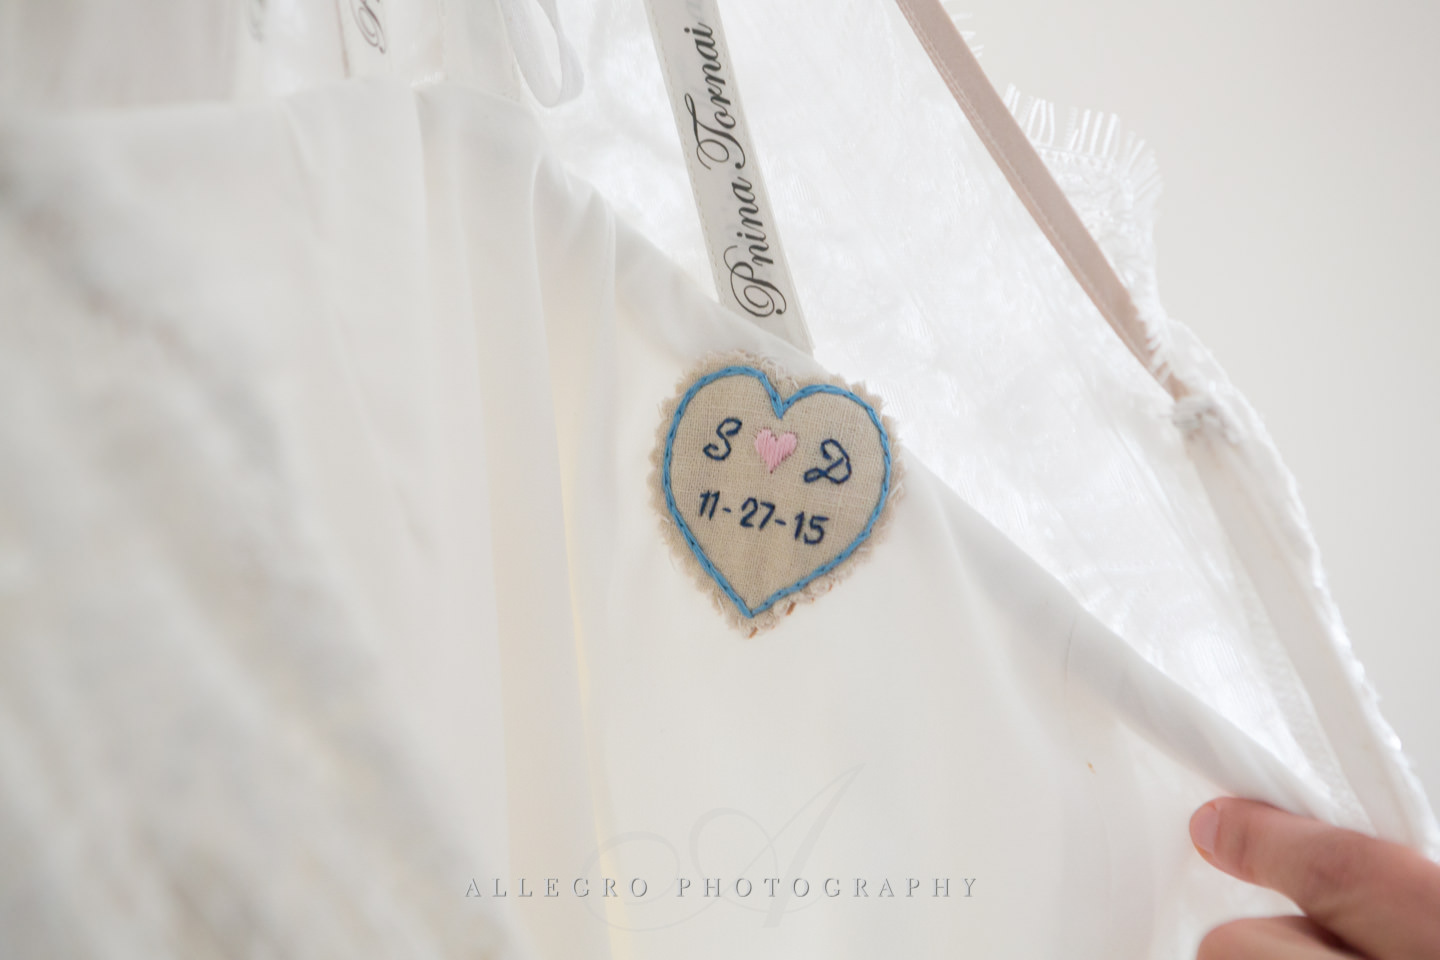 sewn in details with remembrance of wedding date -photo by Allegro Photography